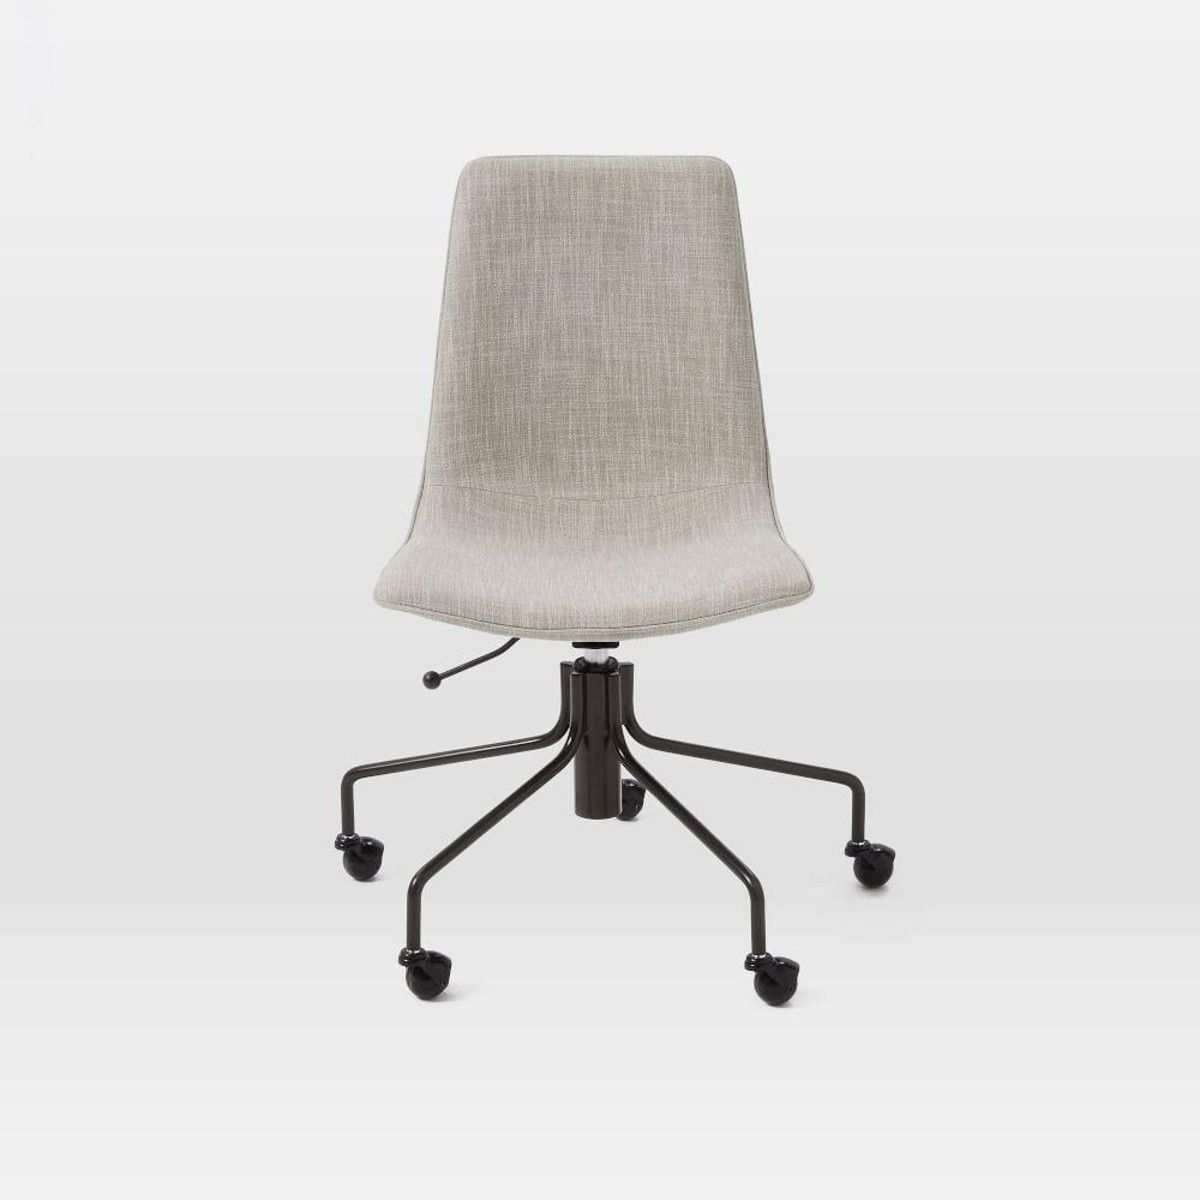 Slope Upholstered Office Chair West Elm Canada Chair Swivel